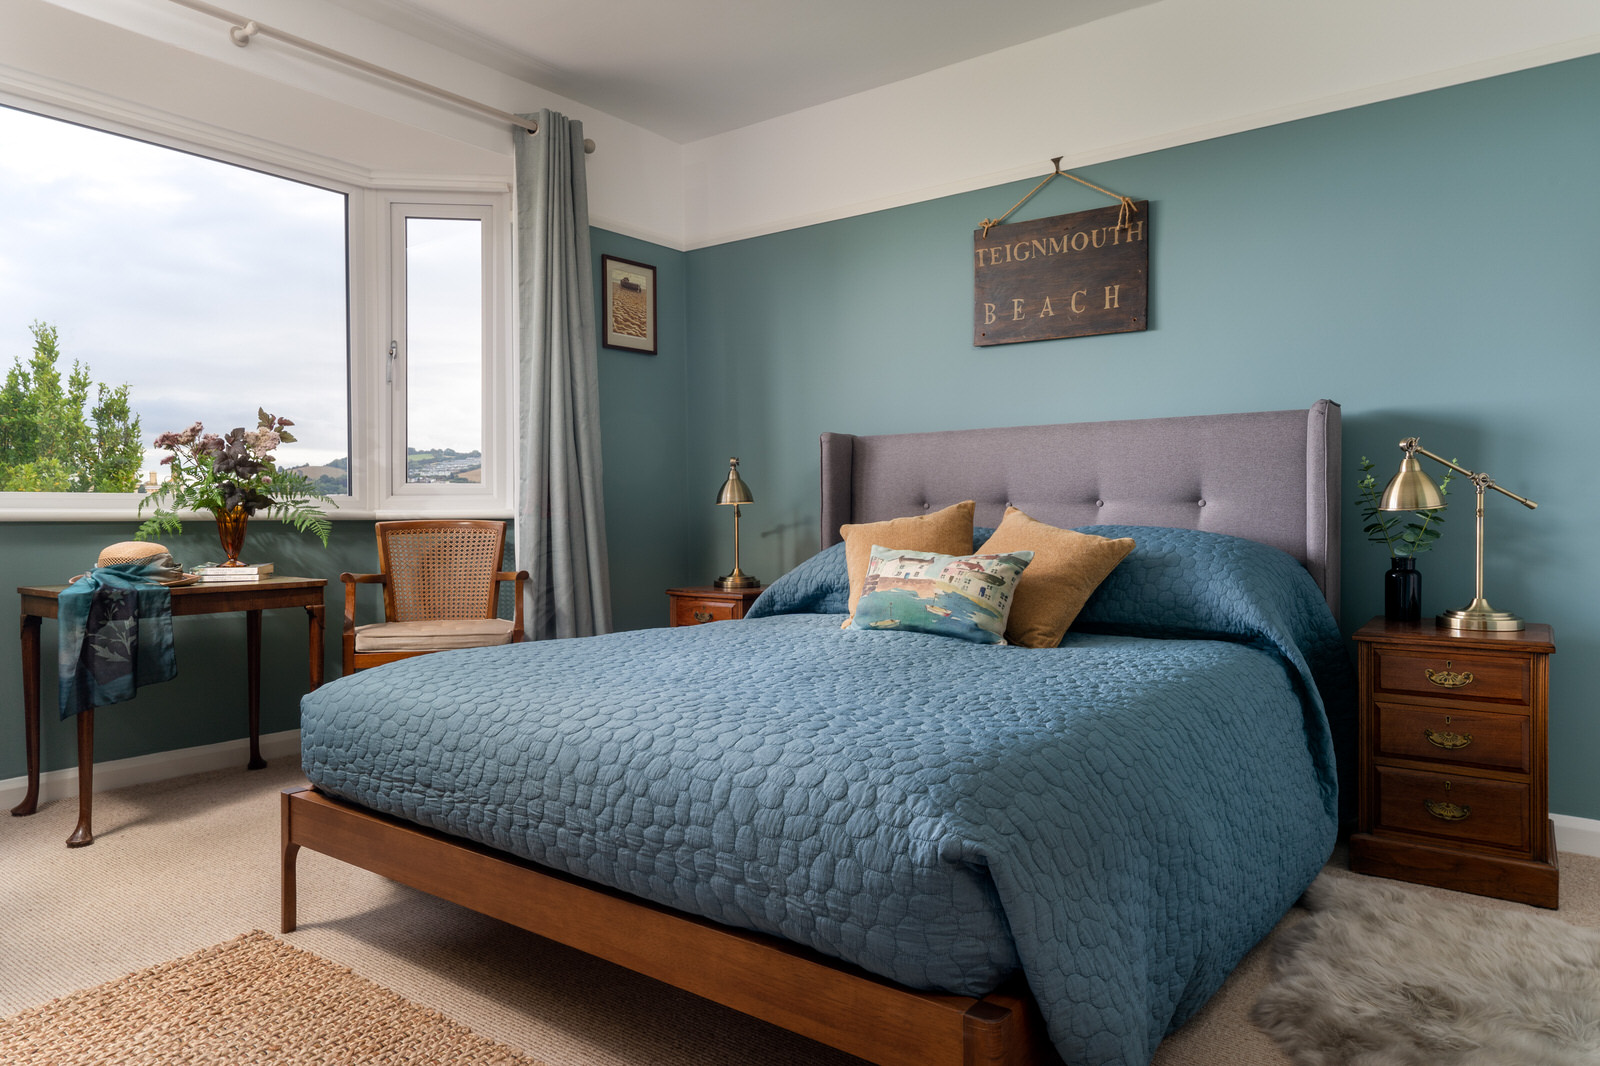 Interior holiday home photography for hortons in Teignmouth